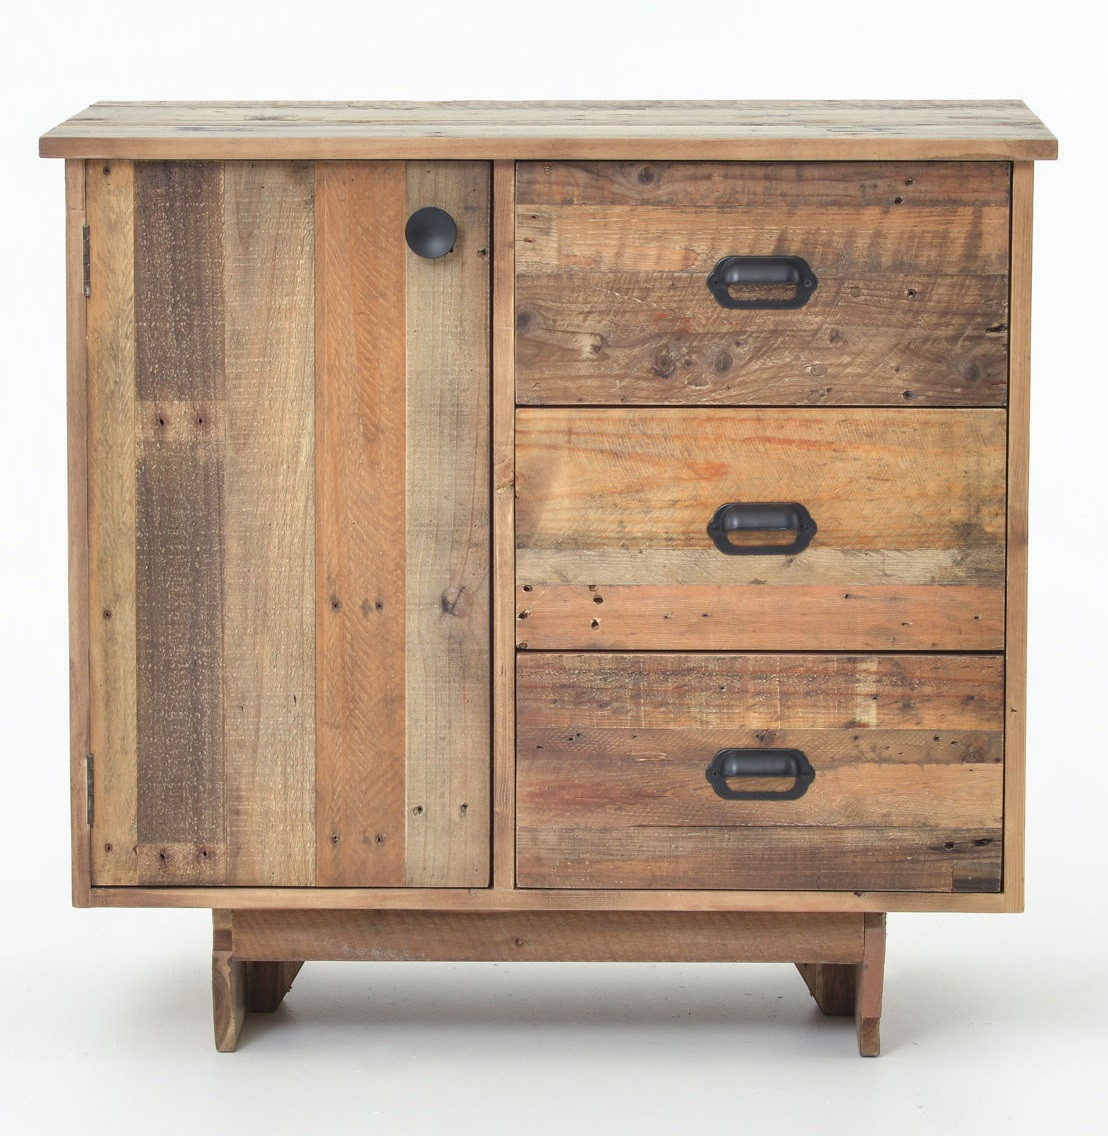 ... Angora Reclaimed Wood Small Sideboard with Drawers ... - Angora Reclaimed Natural Wood Small Sideboard Chest Zin Home